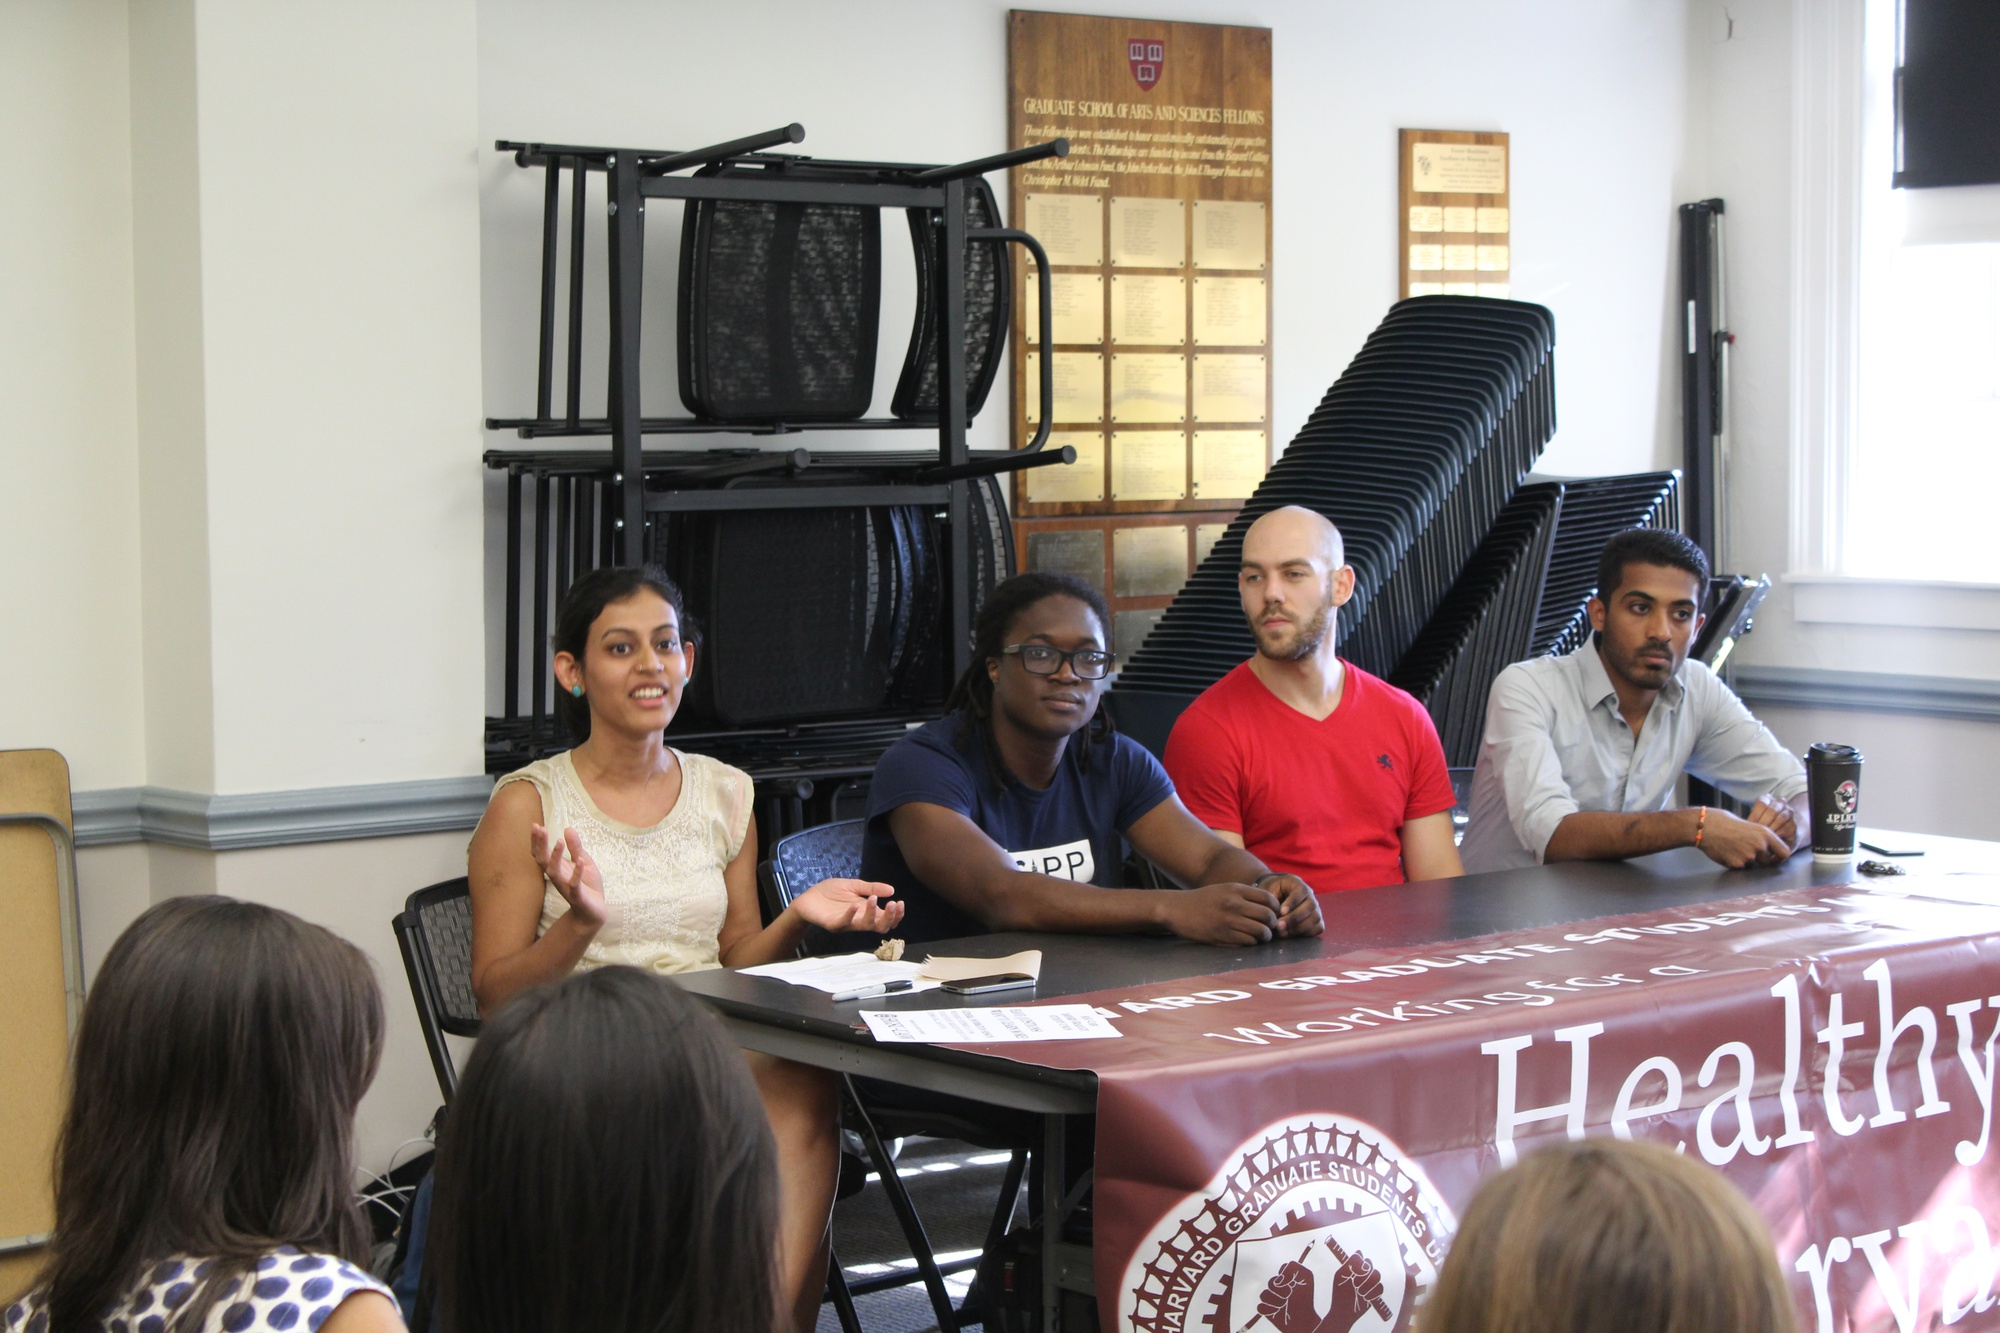 At an info session about Harvard's graduate student unionization effort, Niharika N. Singh explains the benefits of having a union of graduate student workers.